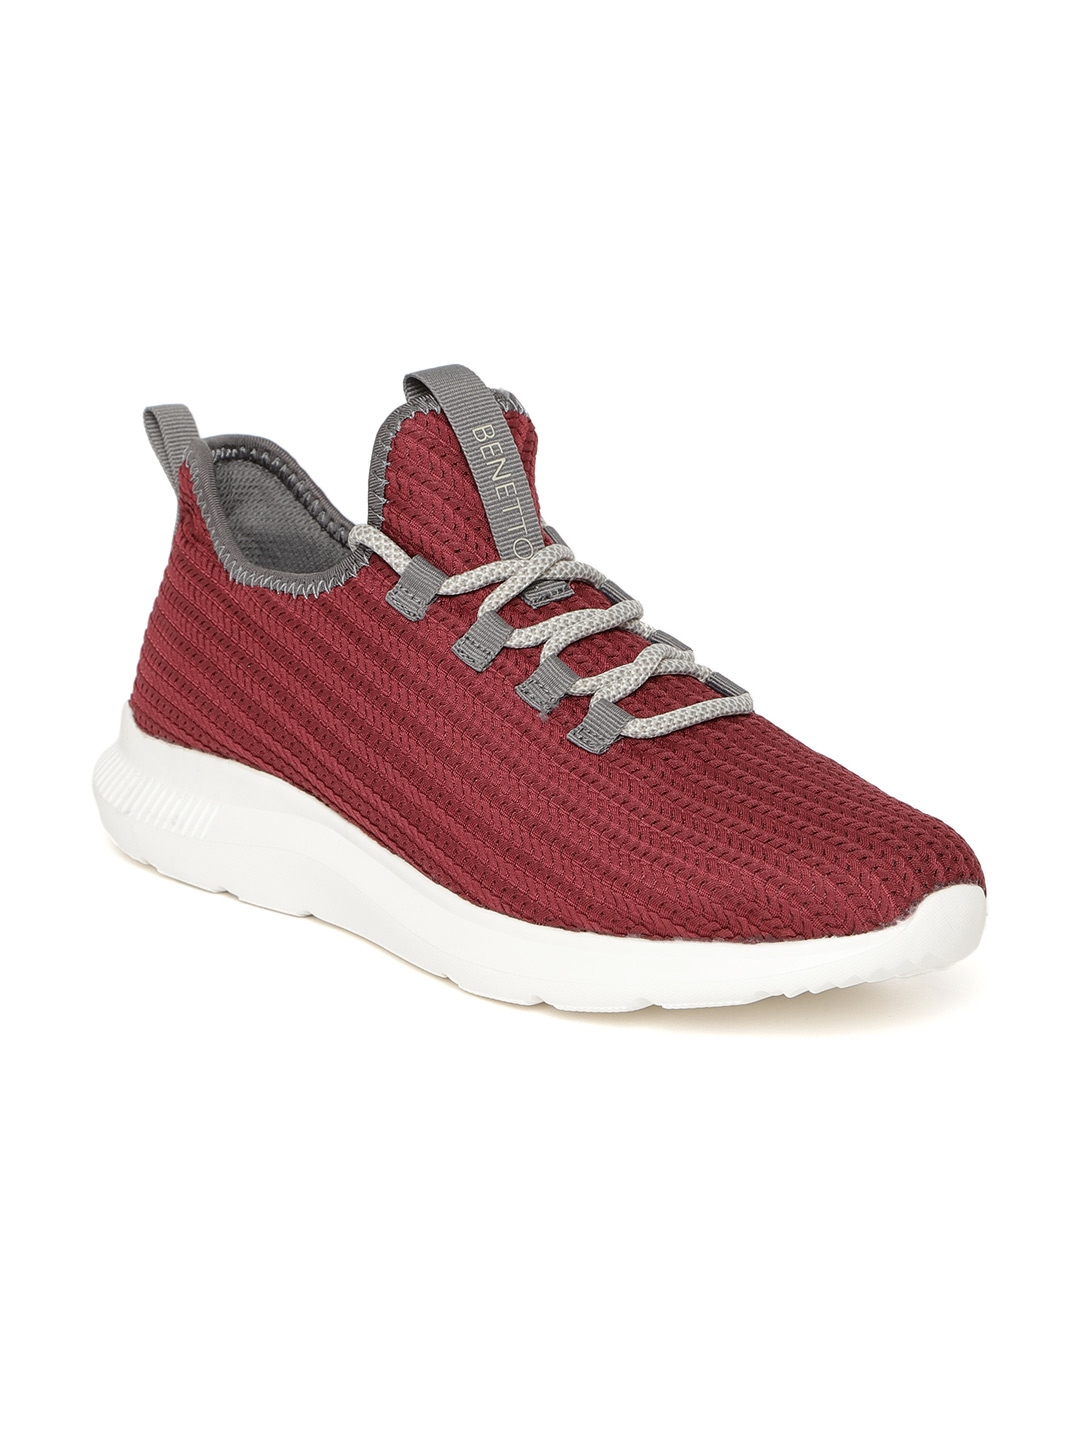 Buy United Colors Of Benetton Men Maroon Woven Design Sneakers